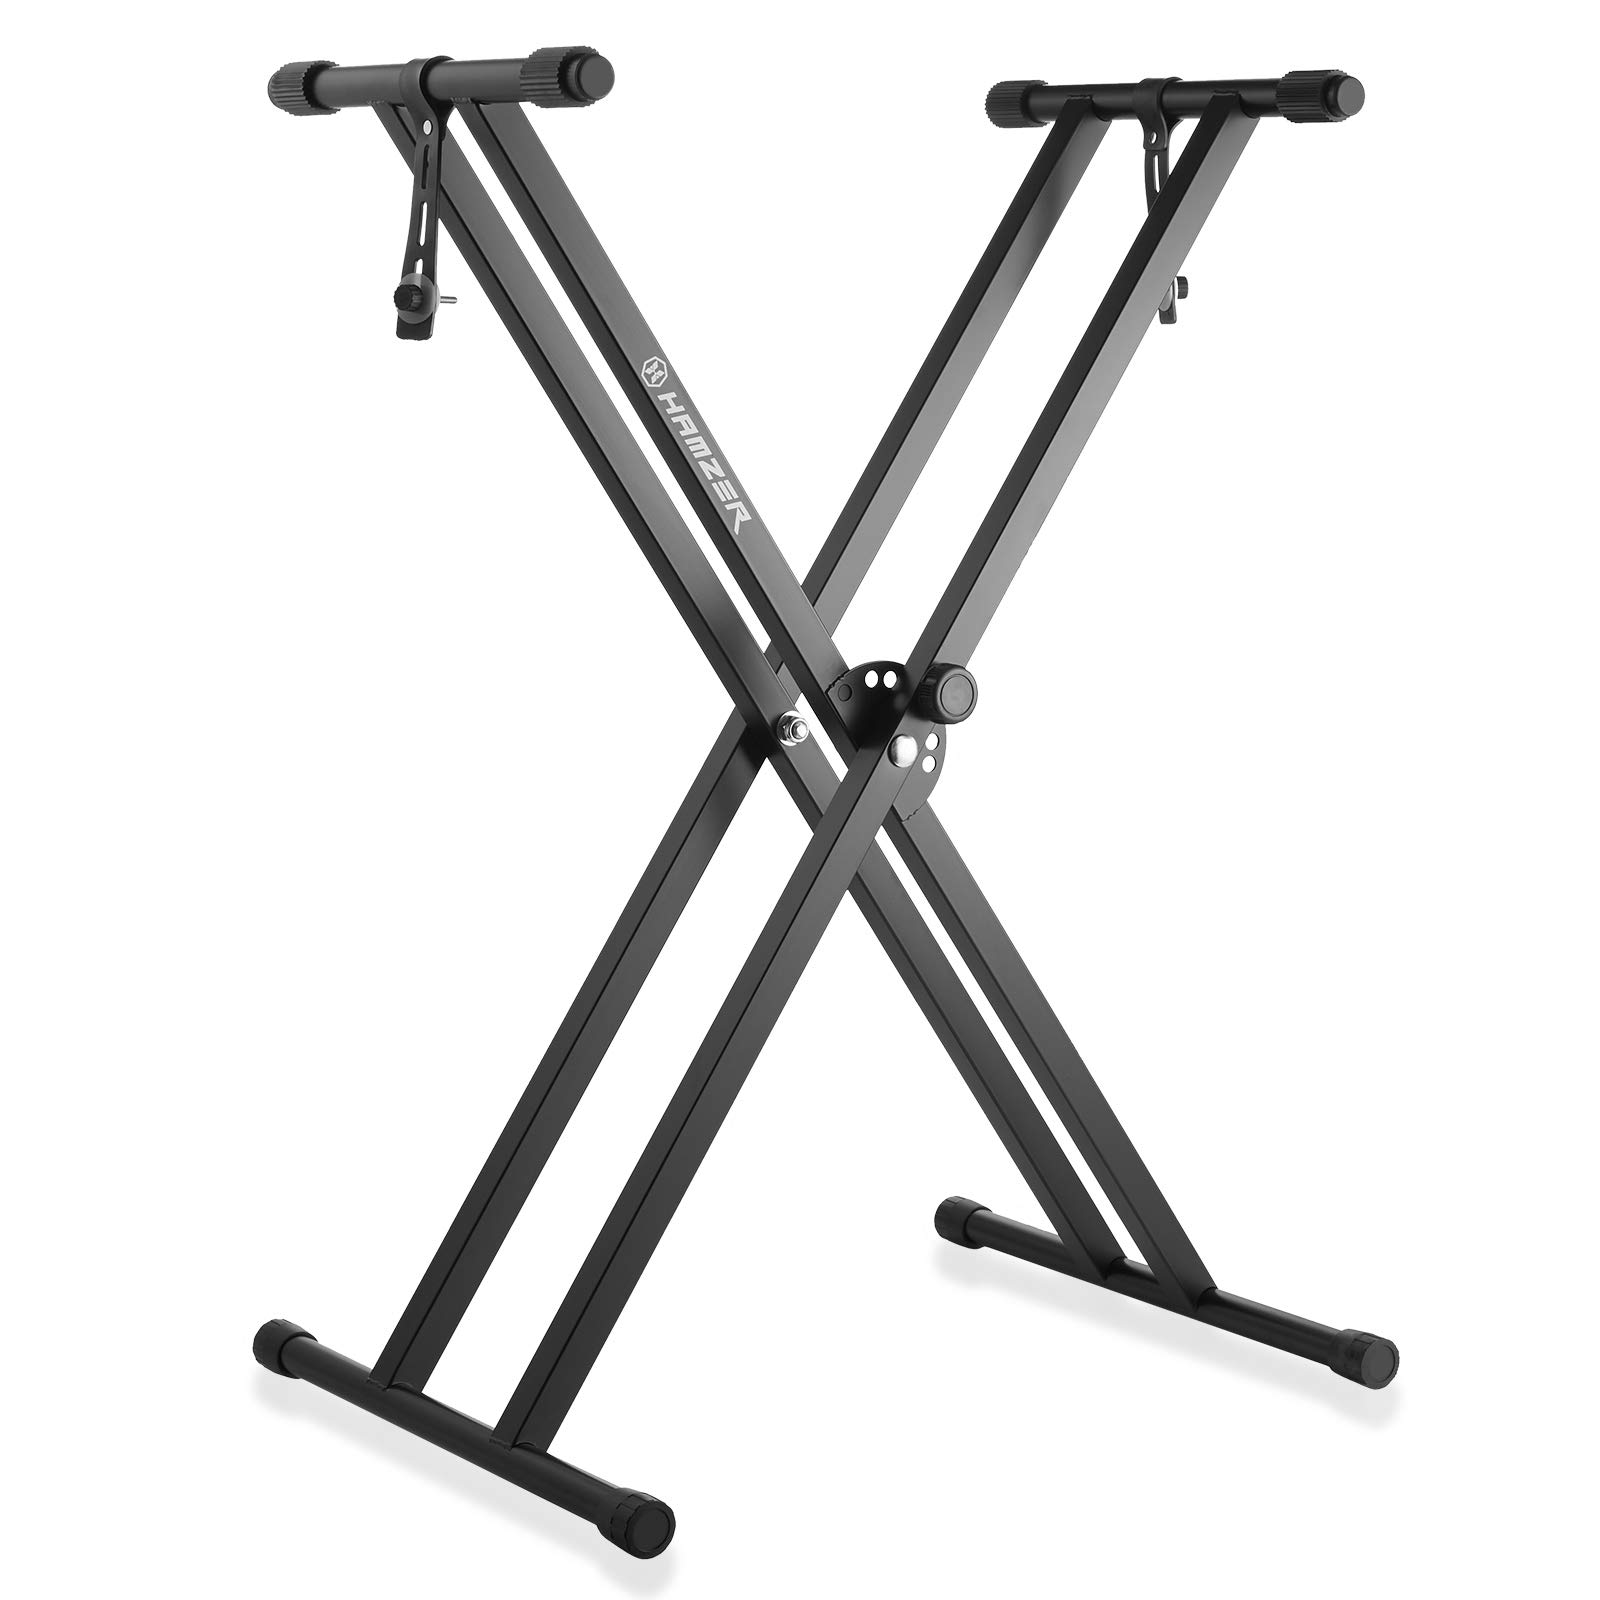 Hamzer Premium Heavy Duty Double Braced Adjustable X2 Style Music Piano Keyboard Stand by Hamzer